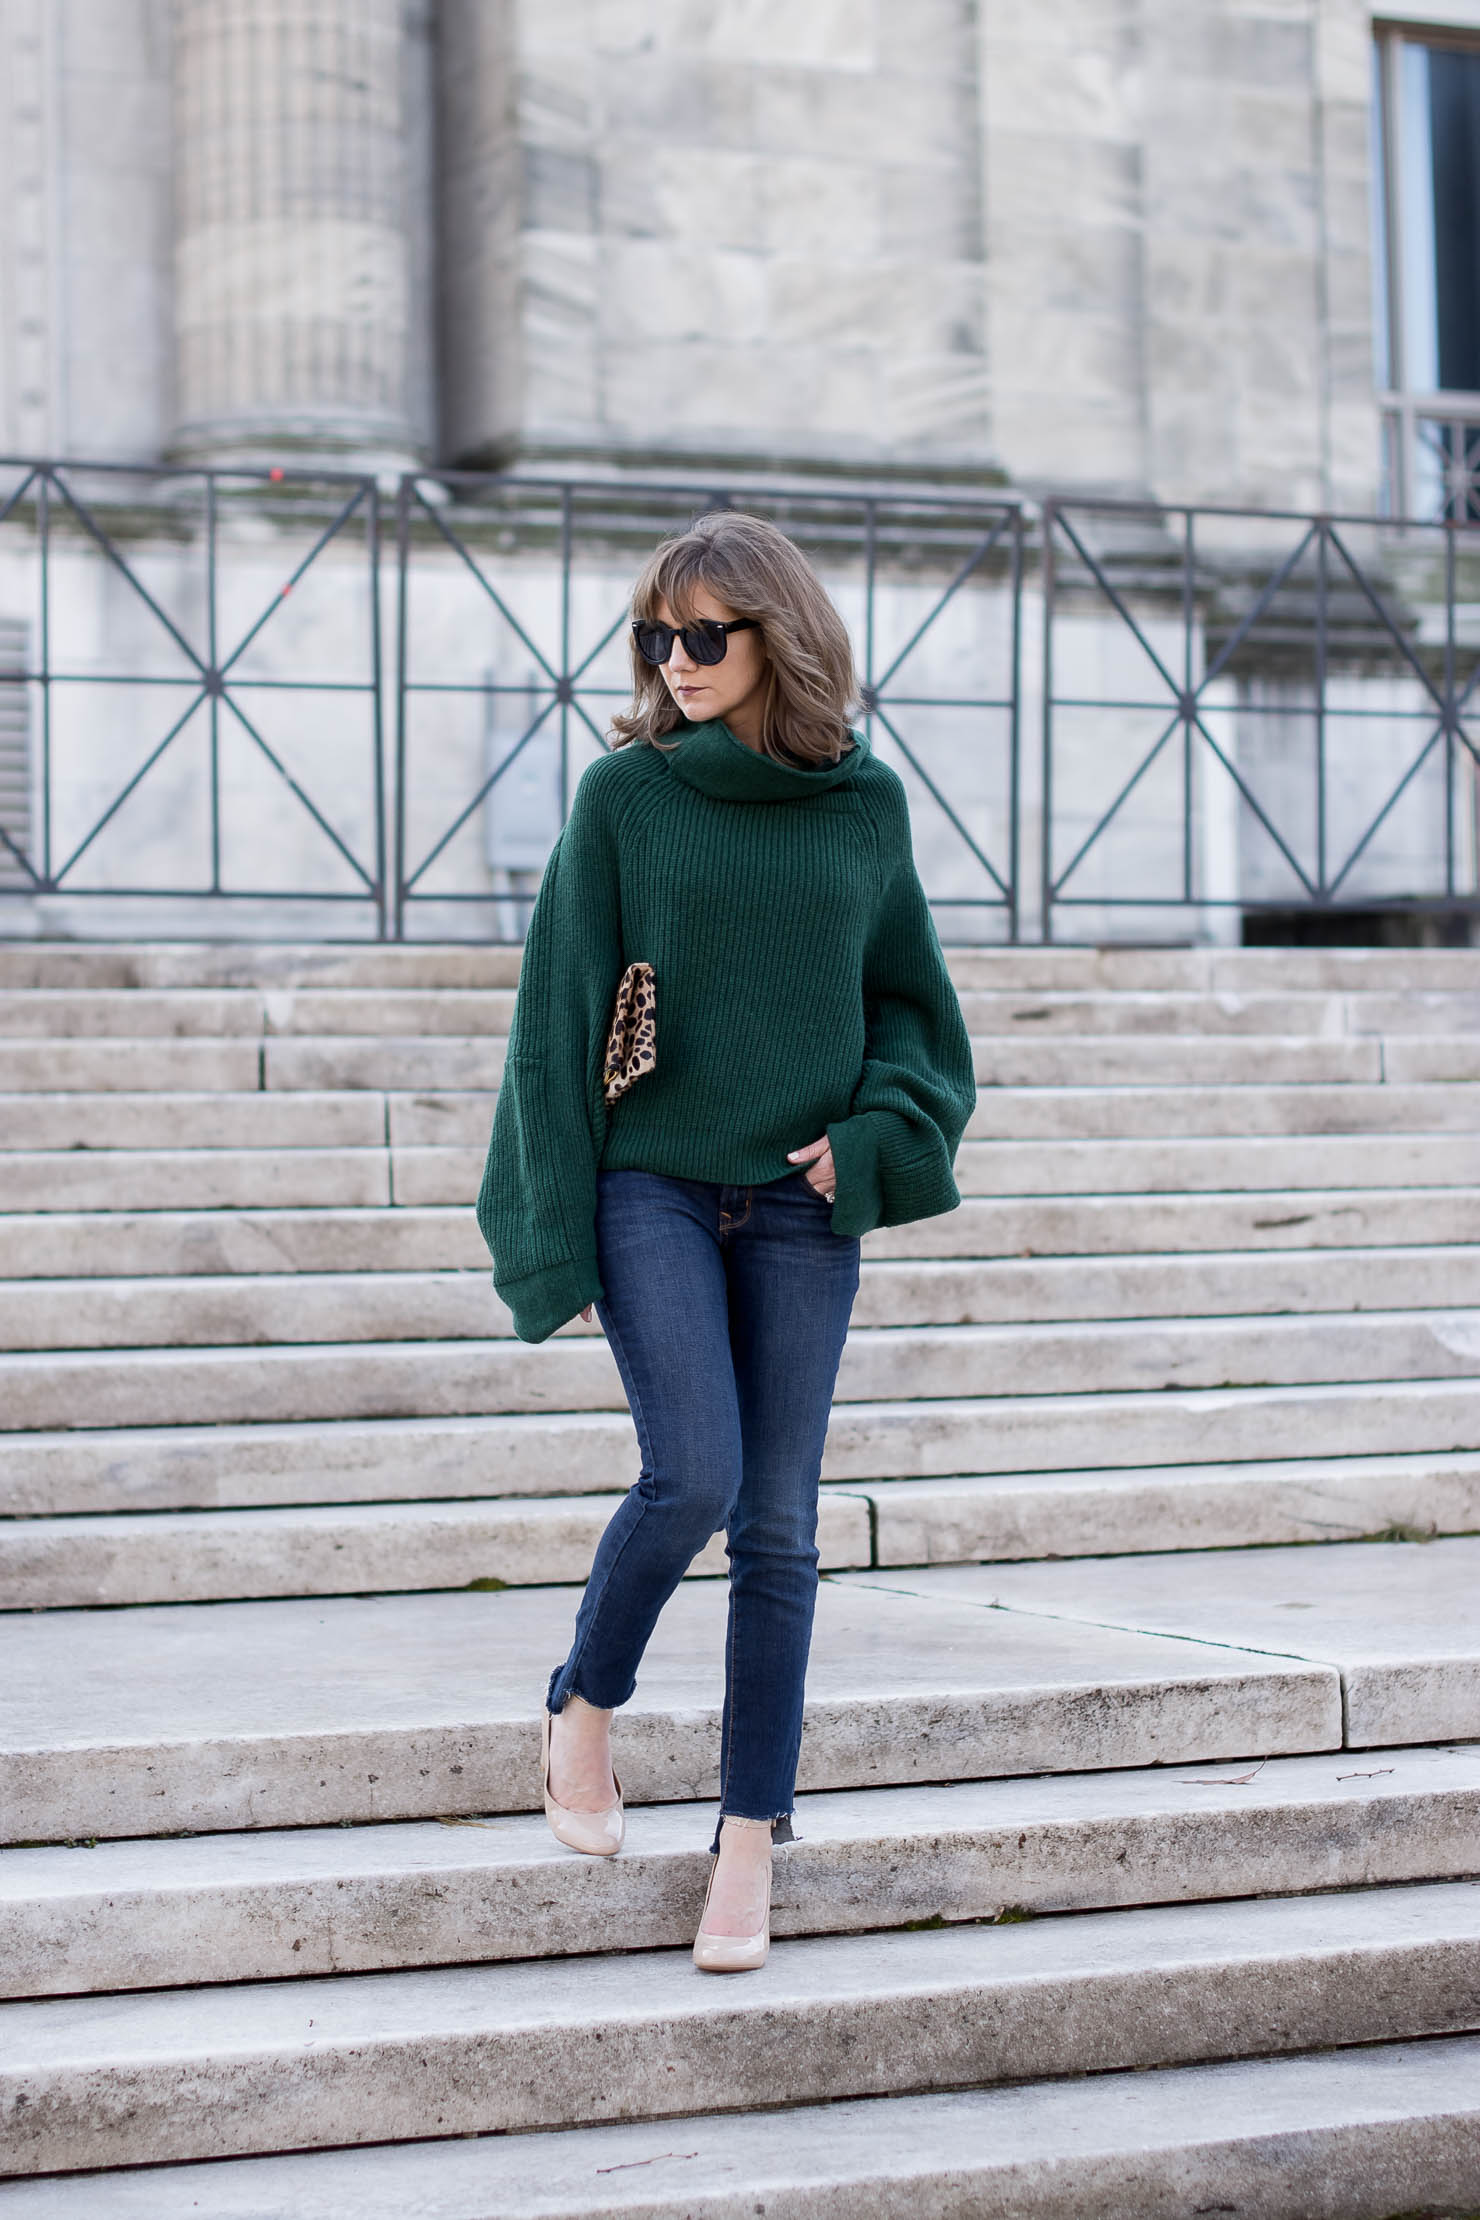 3b28d51983e6 My Love of Oversized Sweaters - Wishes   Reality